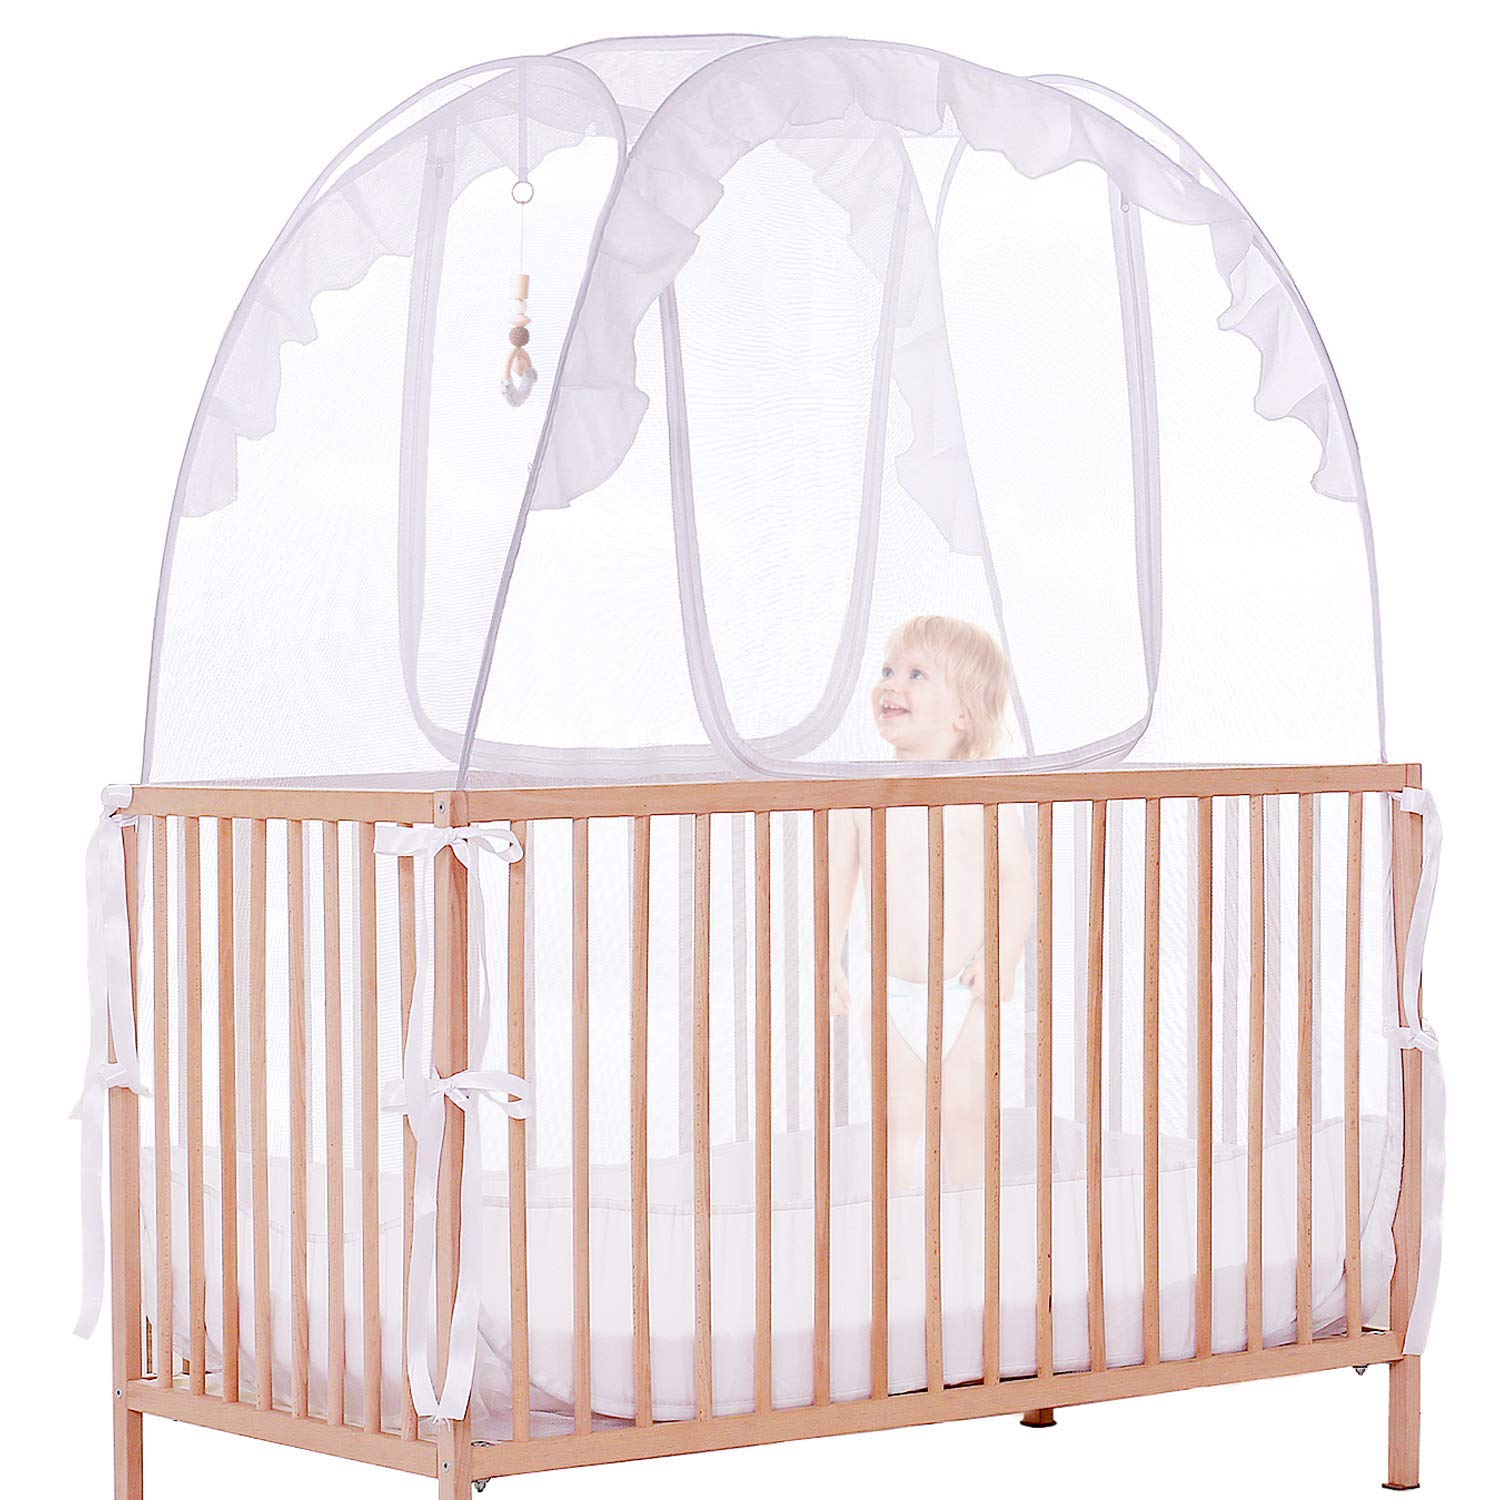 Crib Canopy – Baby Tent with Doll Hanging Rope – Crib Tent to Keep Baby from Climbing Out – Mosquito Net for Crib – Optimal Air Circulation – Sturdy Zipper Closure – Easy DIY Mounting